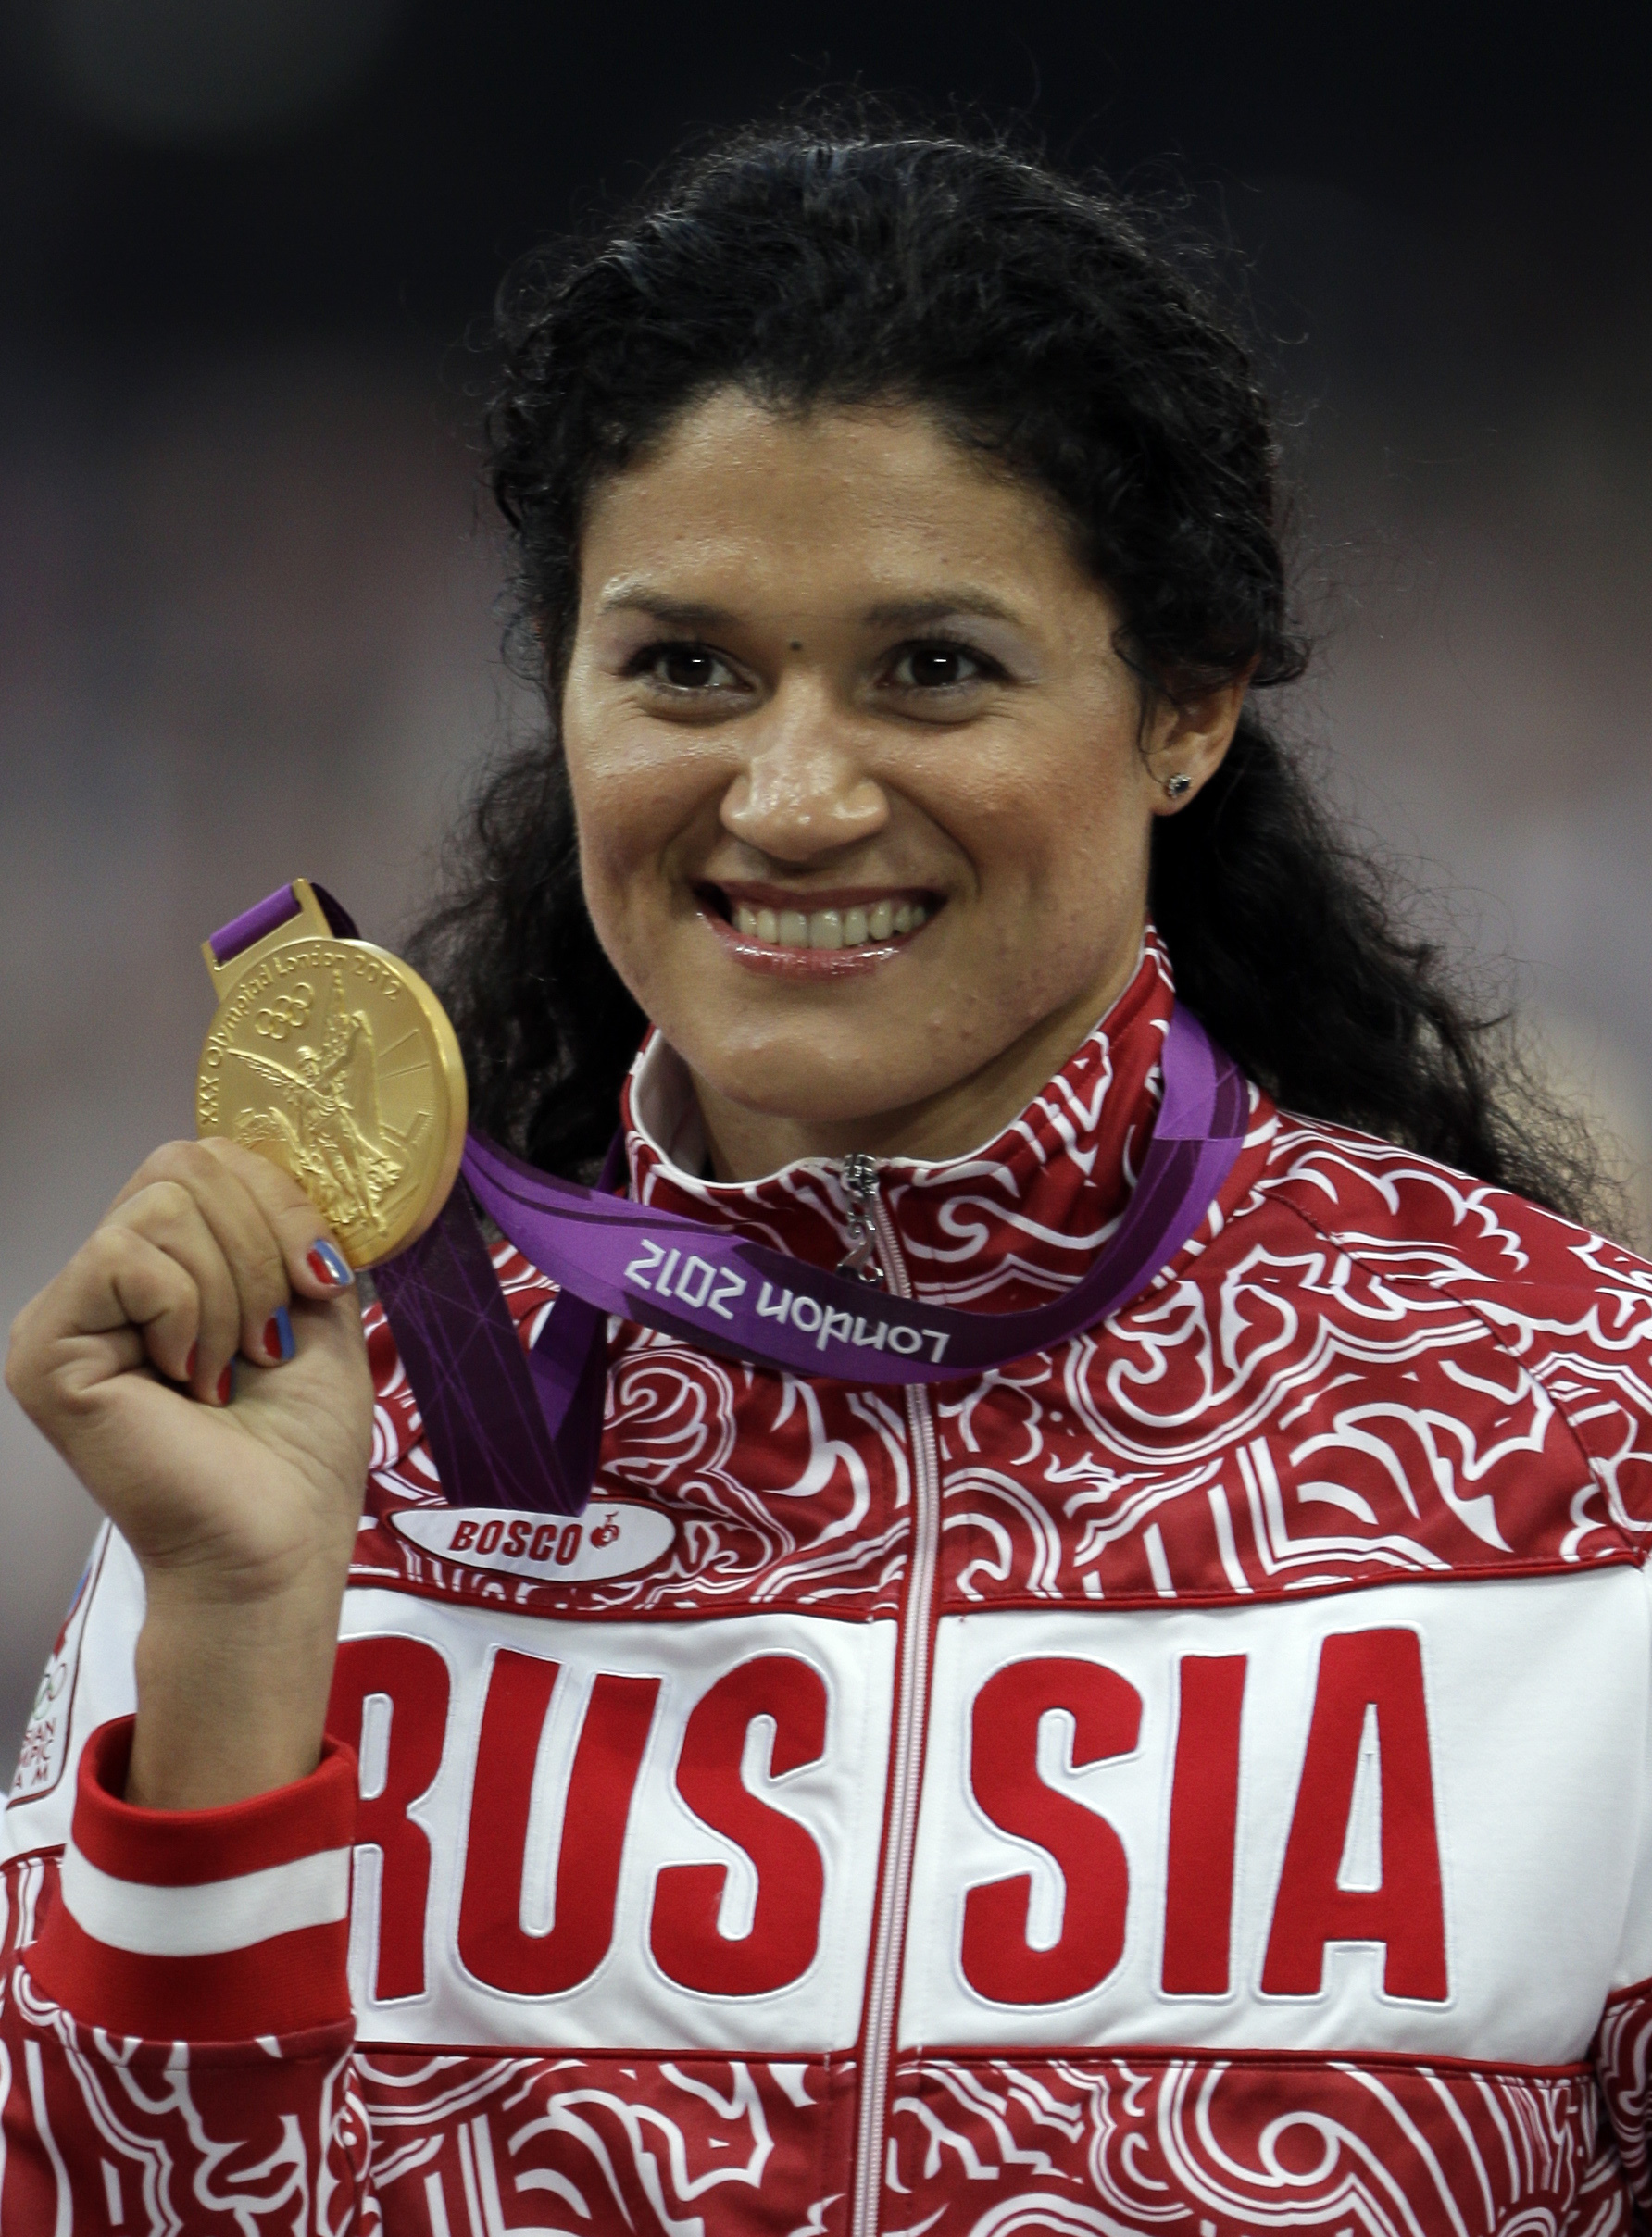 FILE - In this Aug. 11, 2012 file photo Russia's Tatyana Lysenko poses with her gold medal for the women's hammer throw during the athletics in the Olympic Stadium at the 2012 Summer Olympics in London. Lysenko has been stripped of her gold medal from the